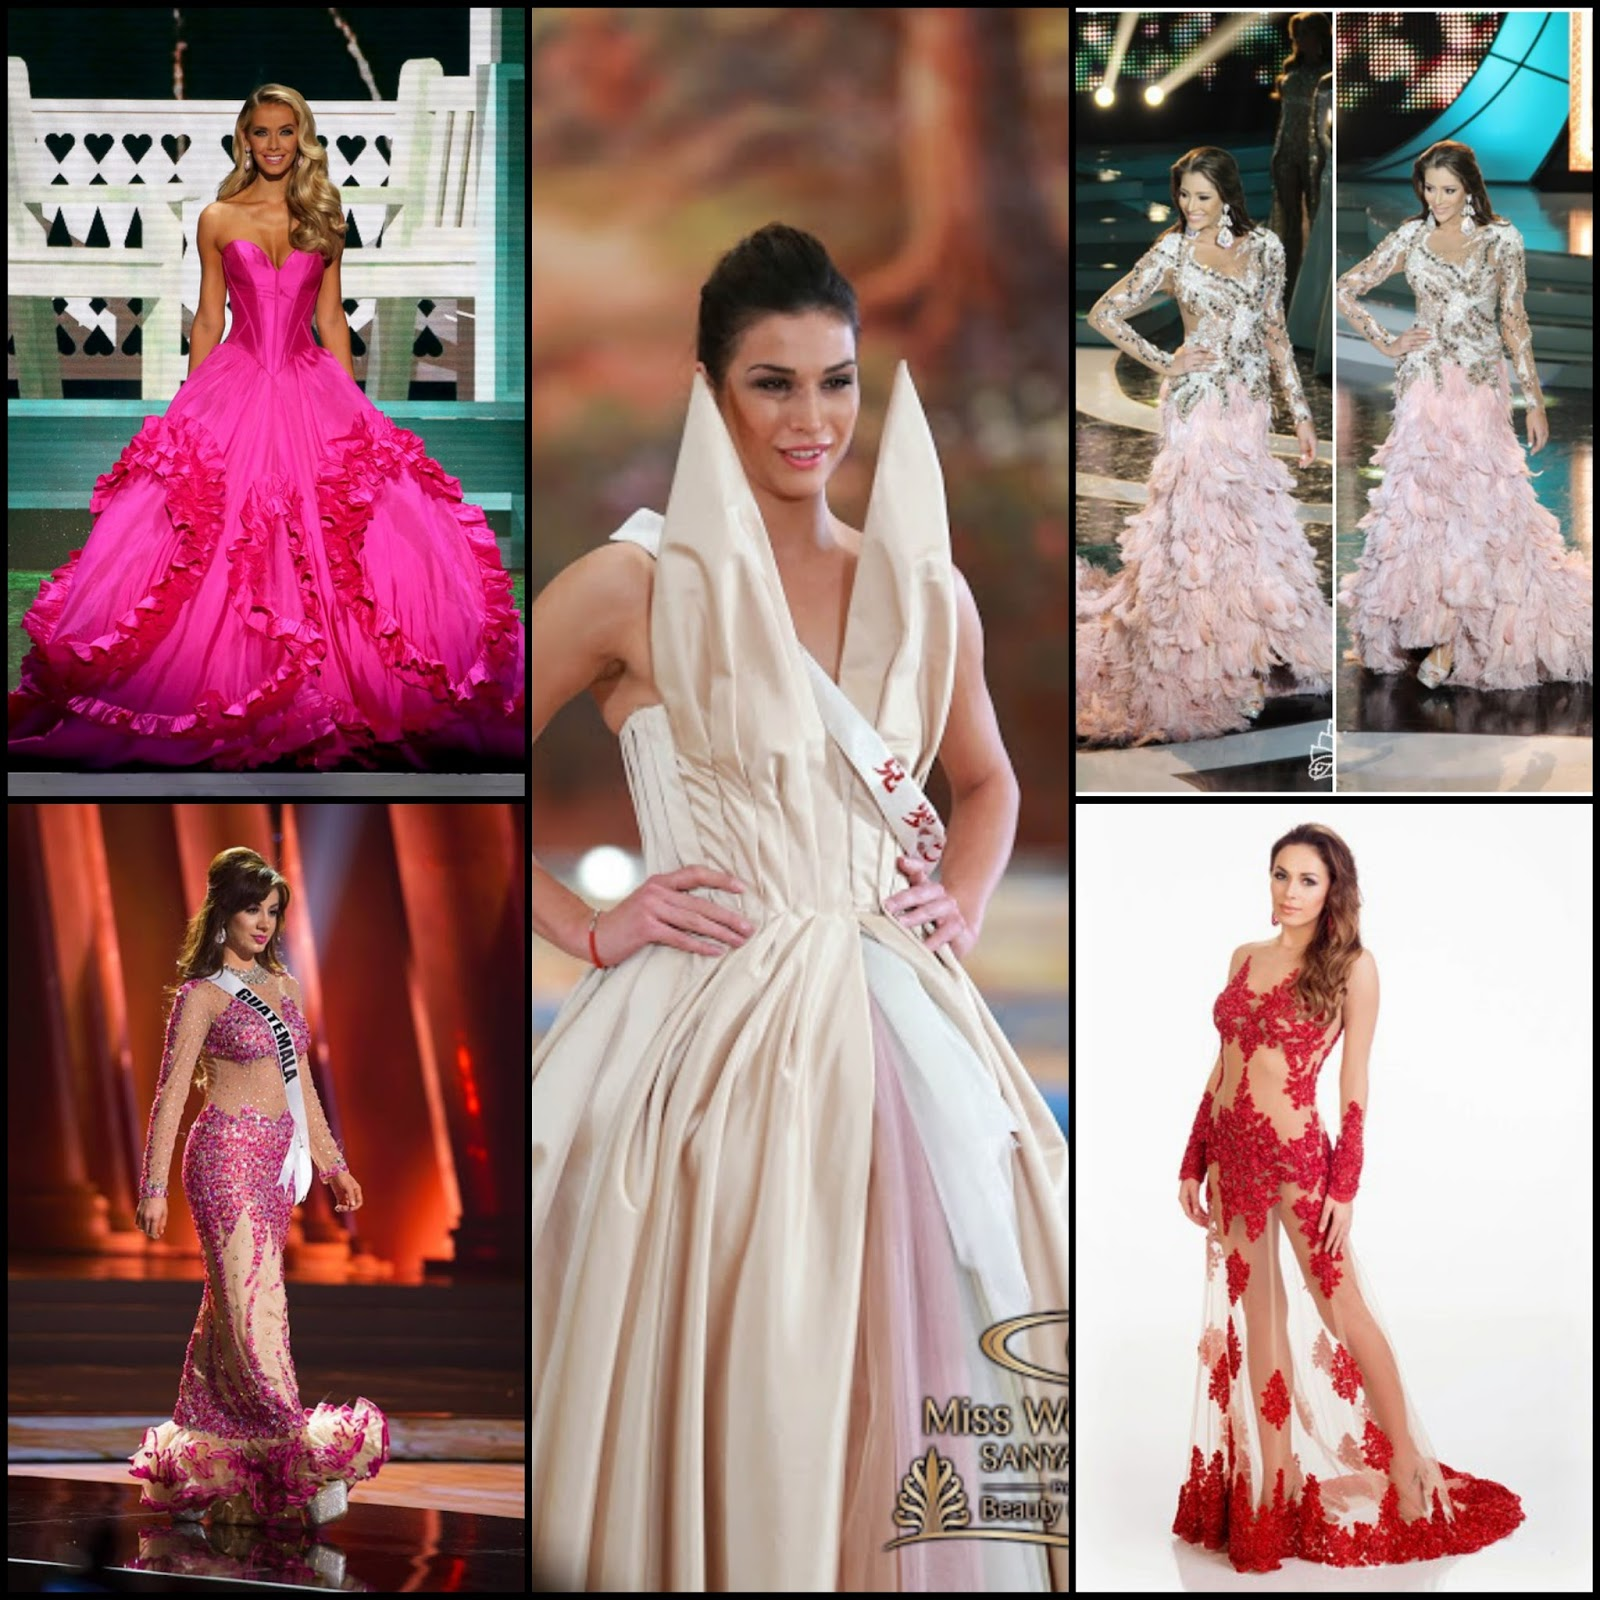 SASHES AND TIARASThe Most Oh DearAyyy Mija Beauty - Models wearing amazing dresses in the worlds most beautiful locations